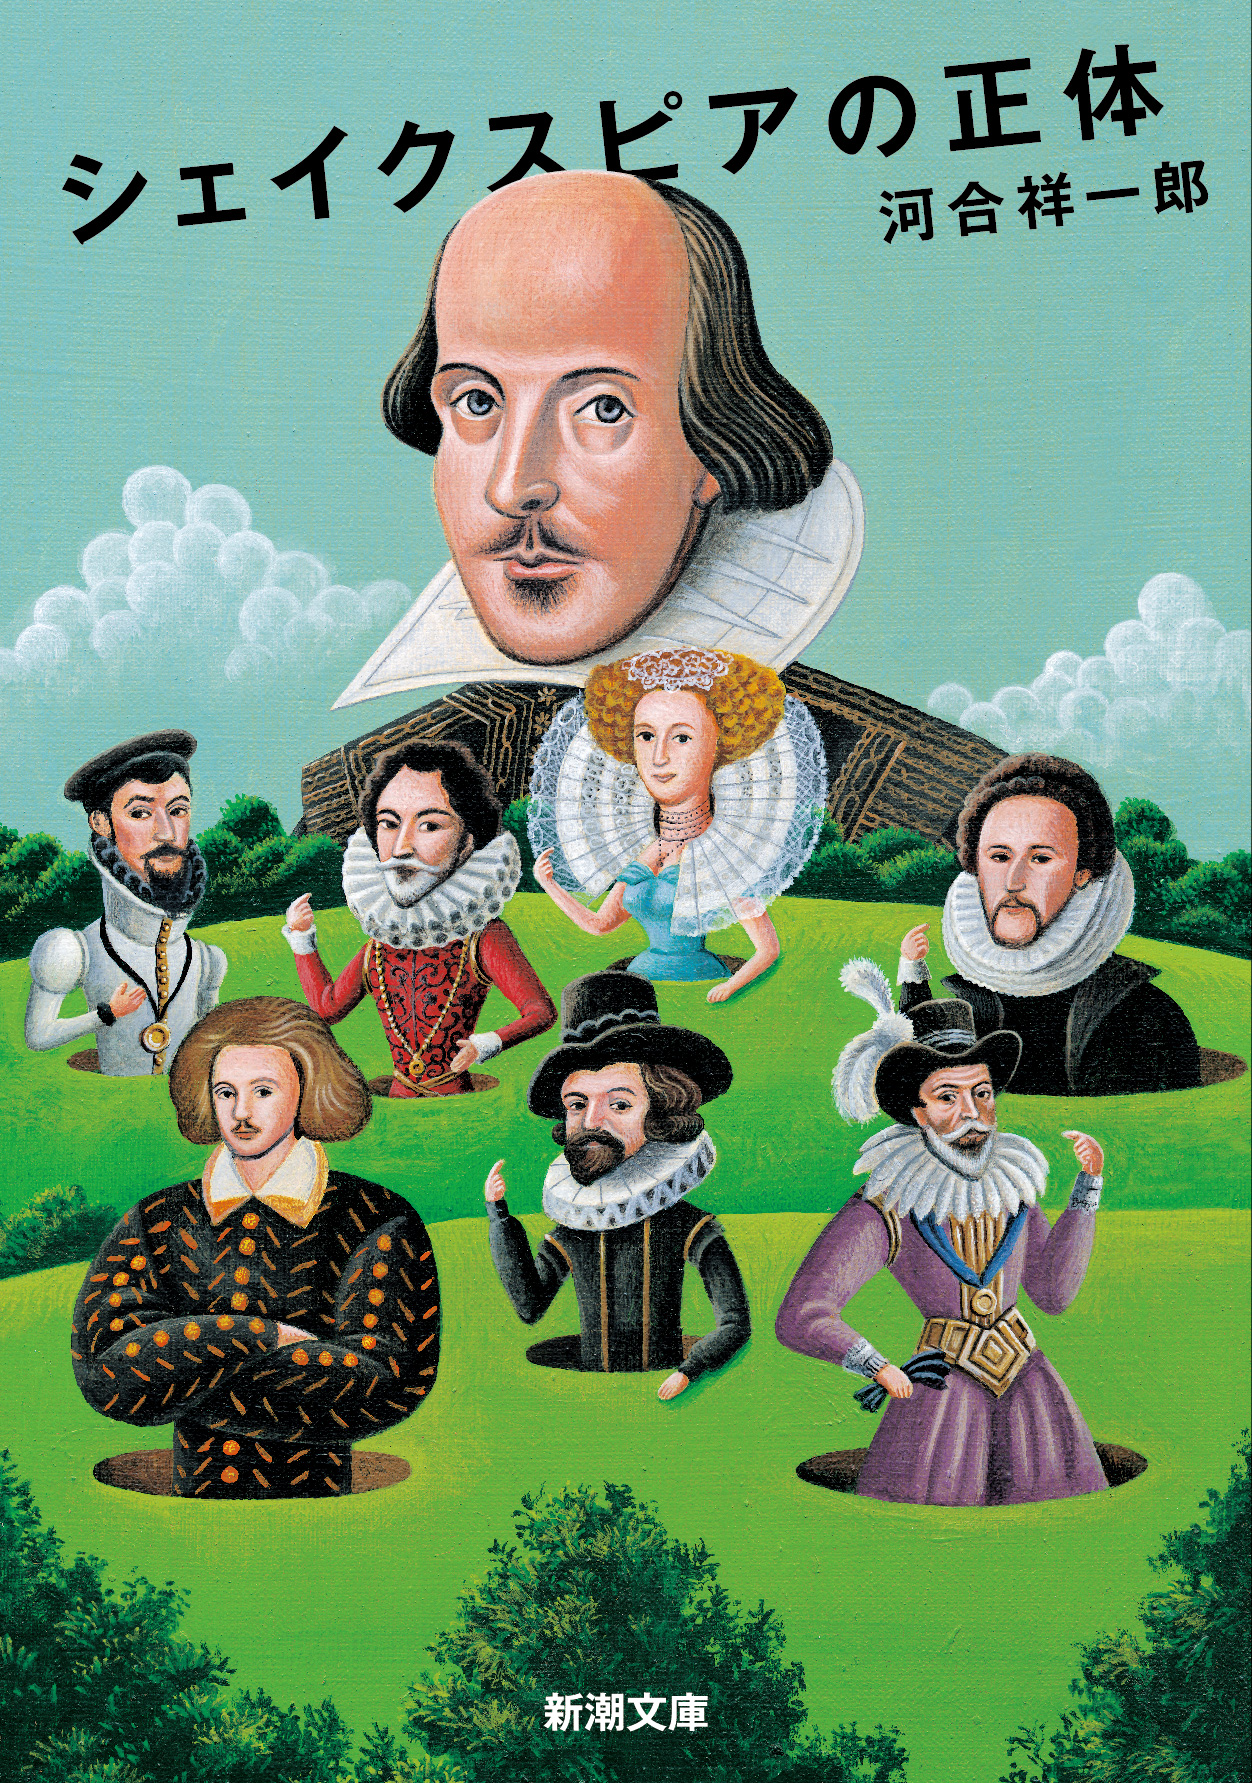 Illustration of Shakespeare and people around him